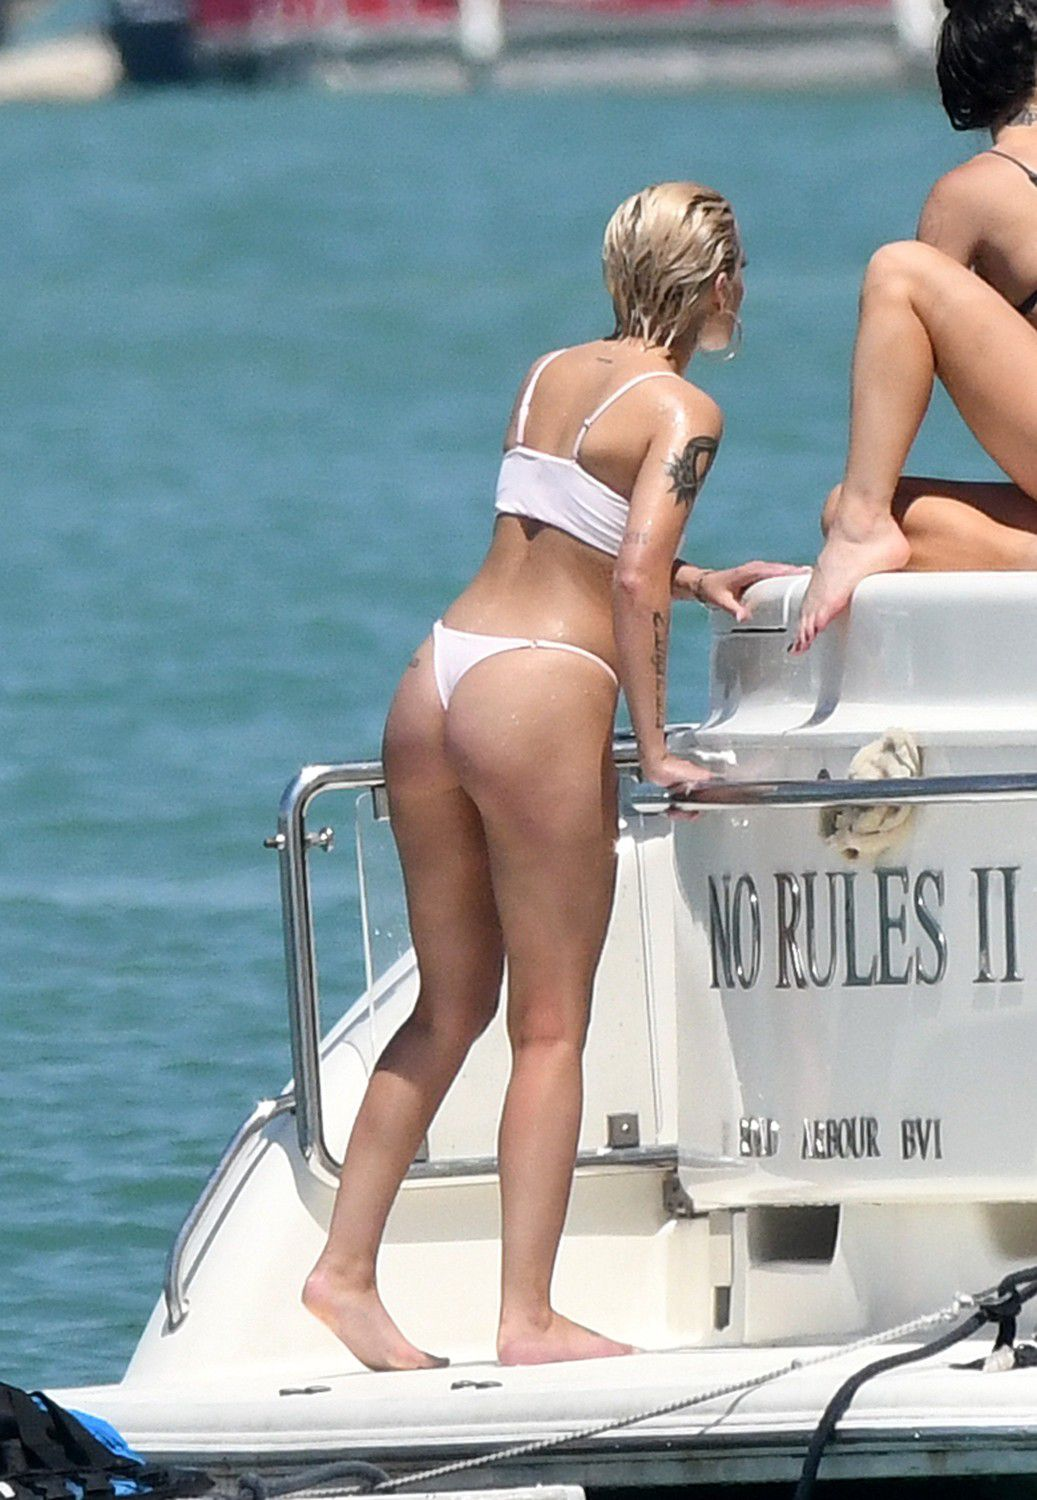 halsey-wearing-a-white-thong-bikini-on-a-yacht-in-miami-6763